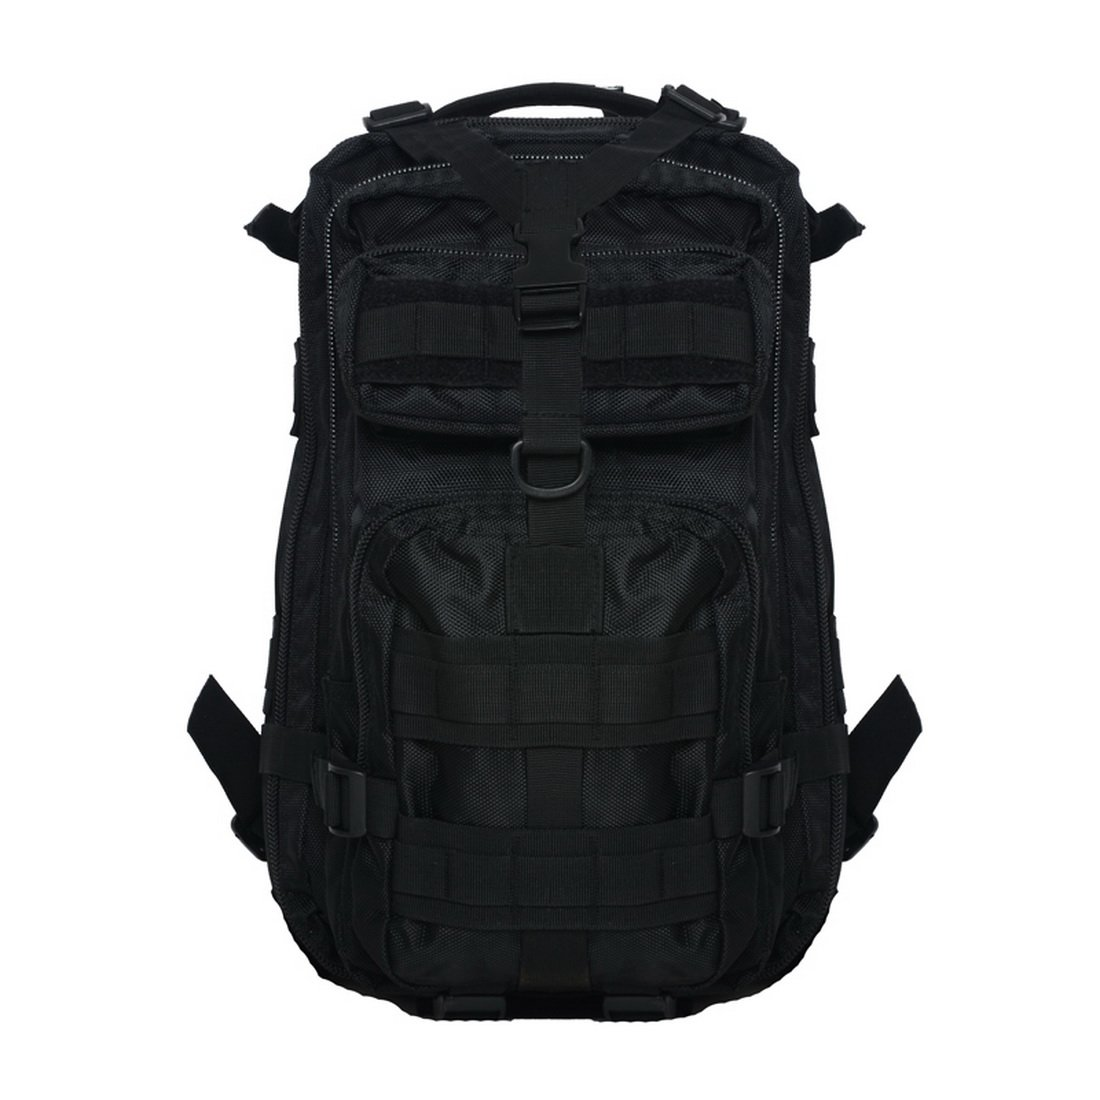 laamei Tactical Backpack Camo Army Backpack Shoulder Bag for Outdoor Hiking Camping